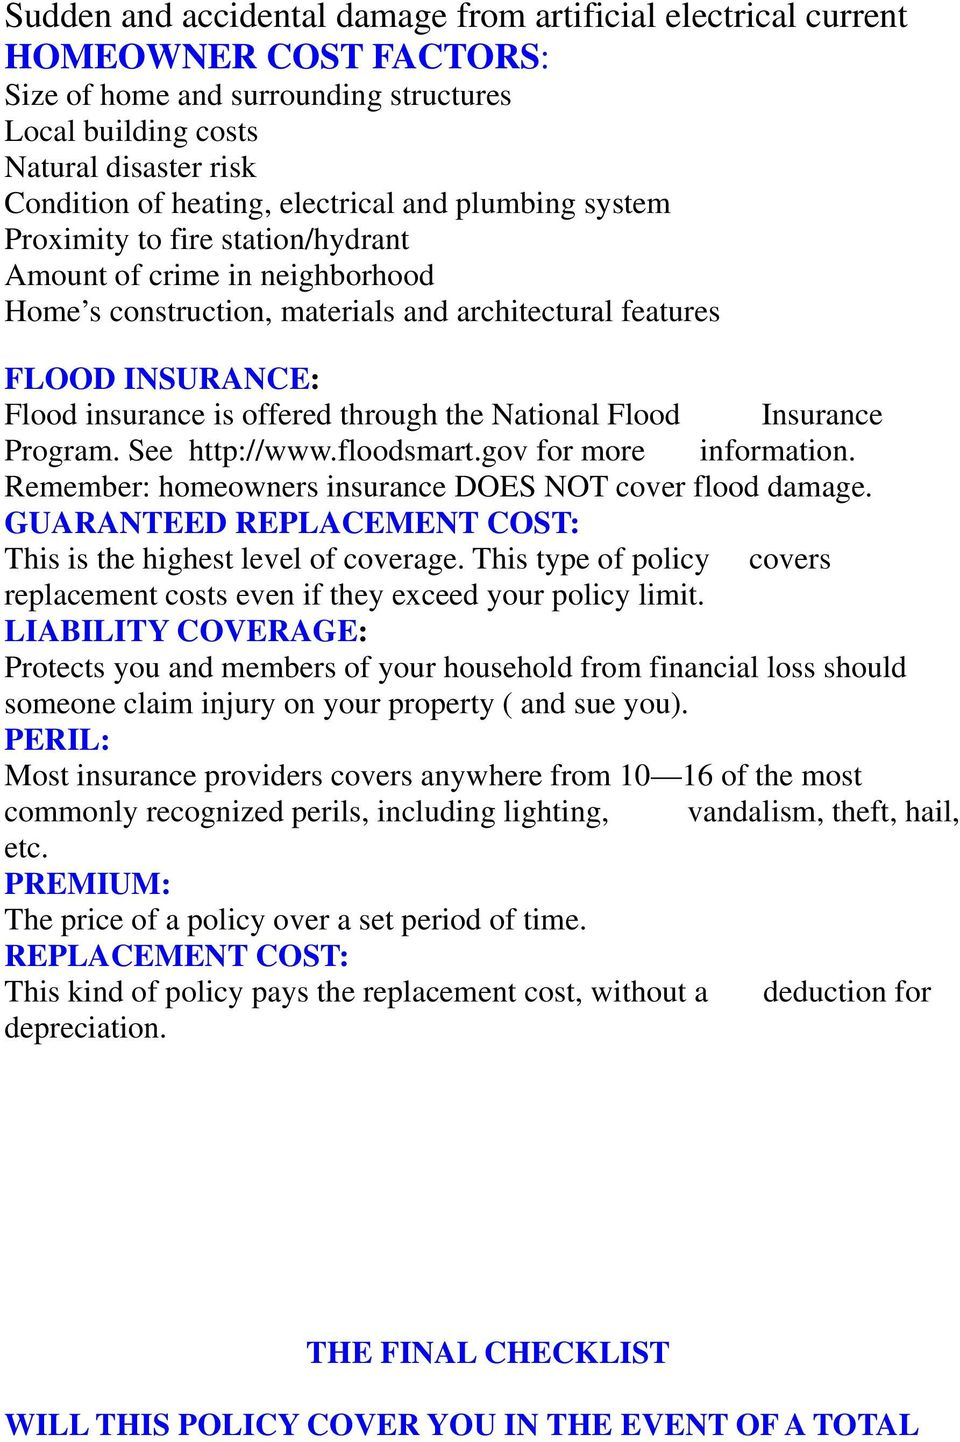 through the National Flood Insurance Program. See http://www.floodsmart.gov for more information. Remember: homeowners insurance DOES NOT cover flood damage.